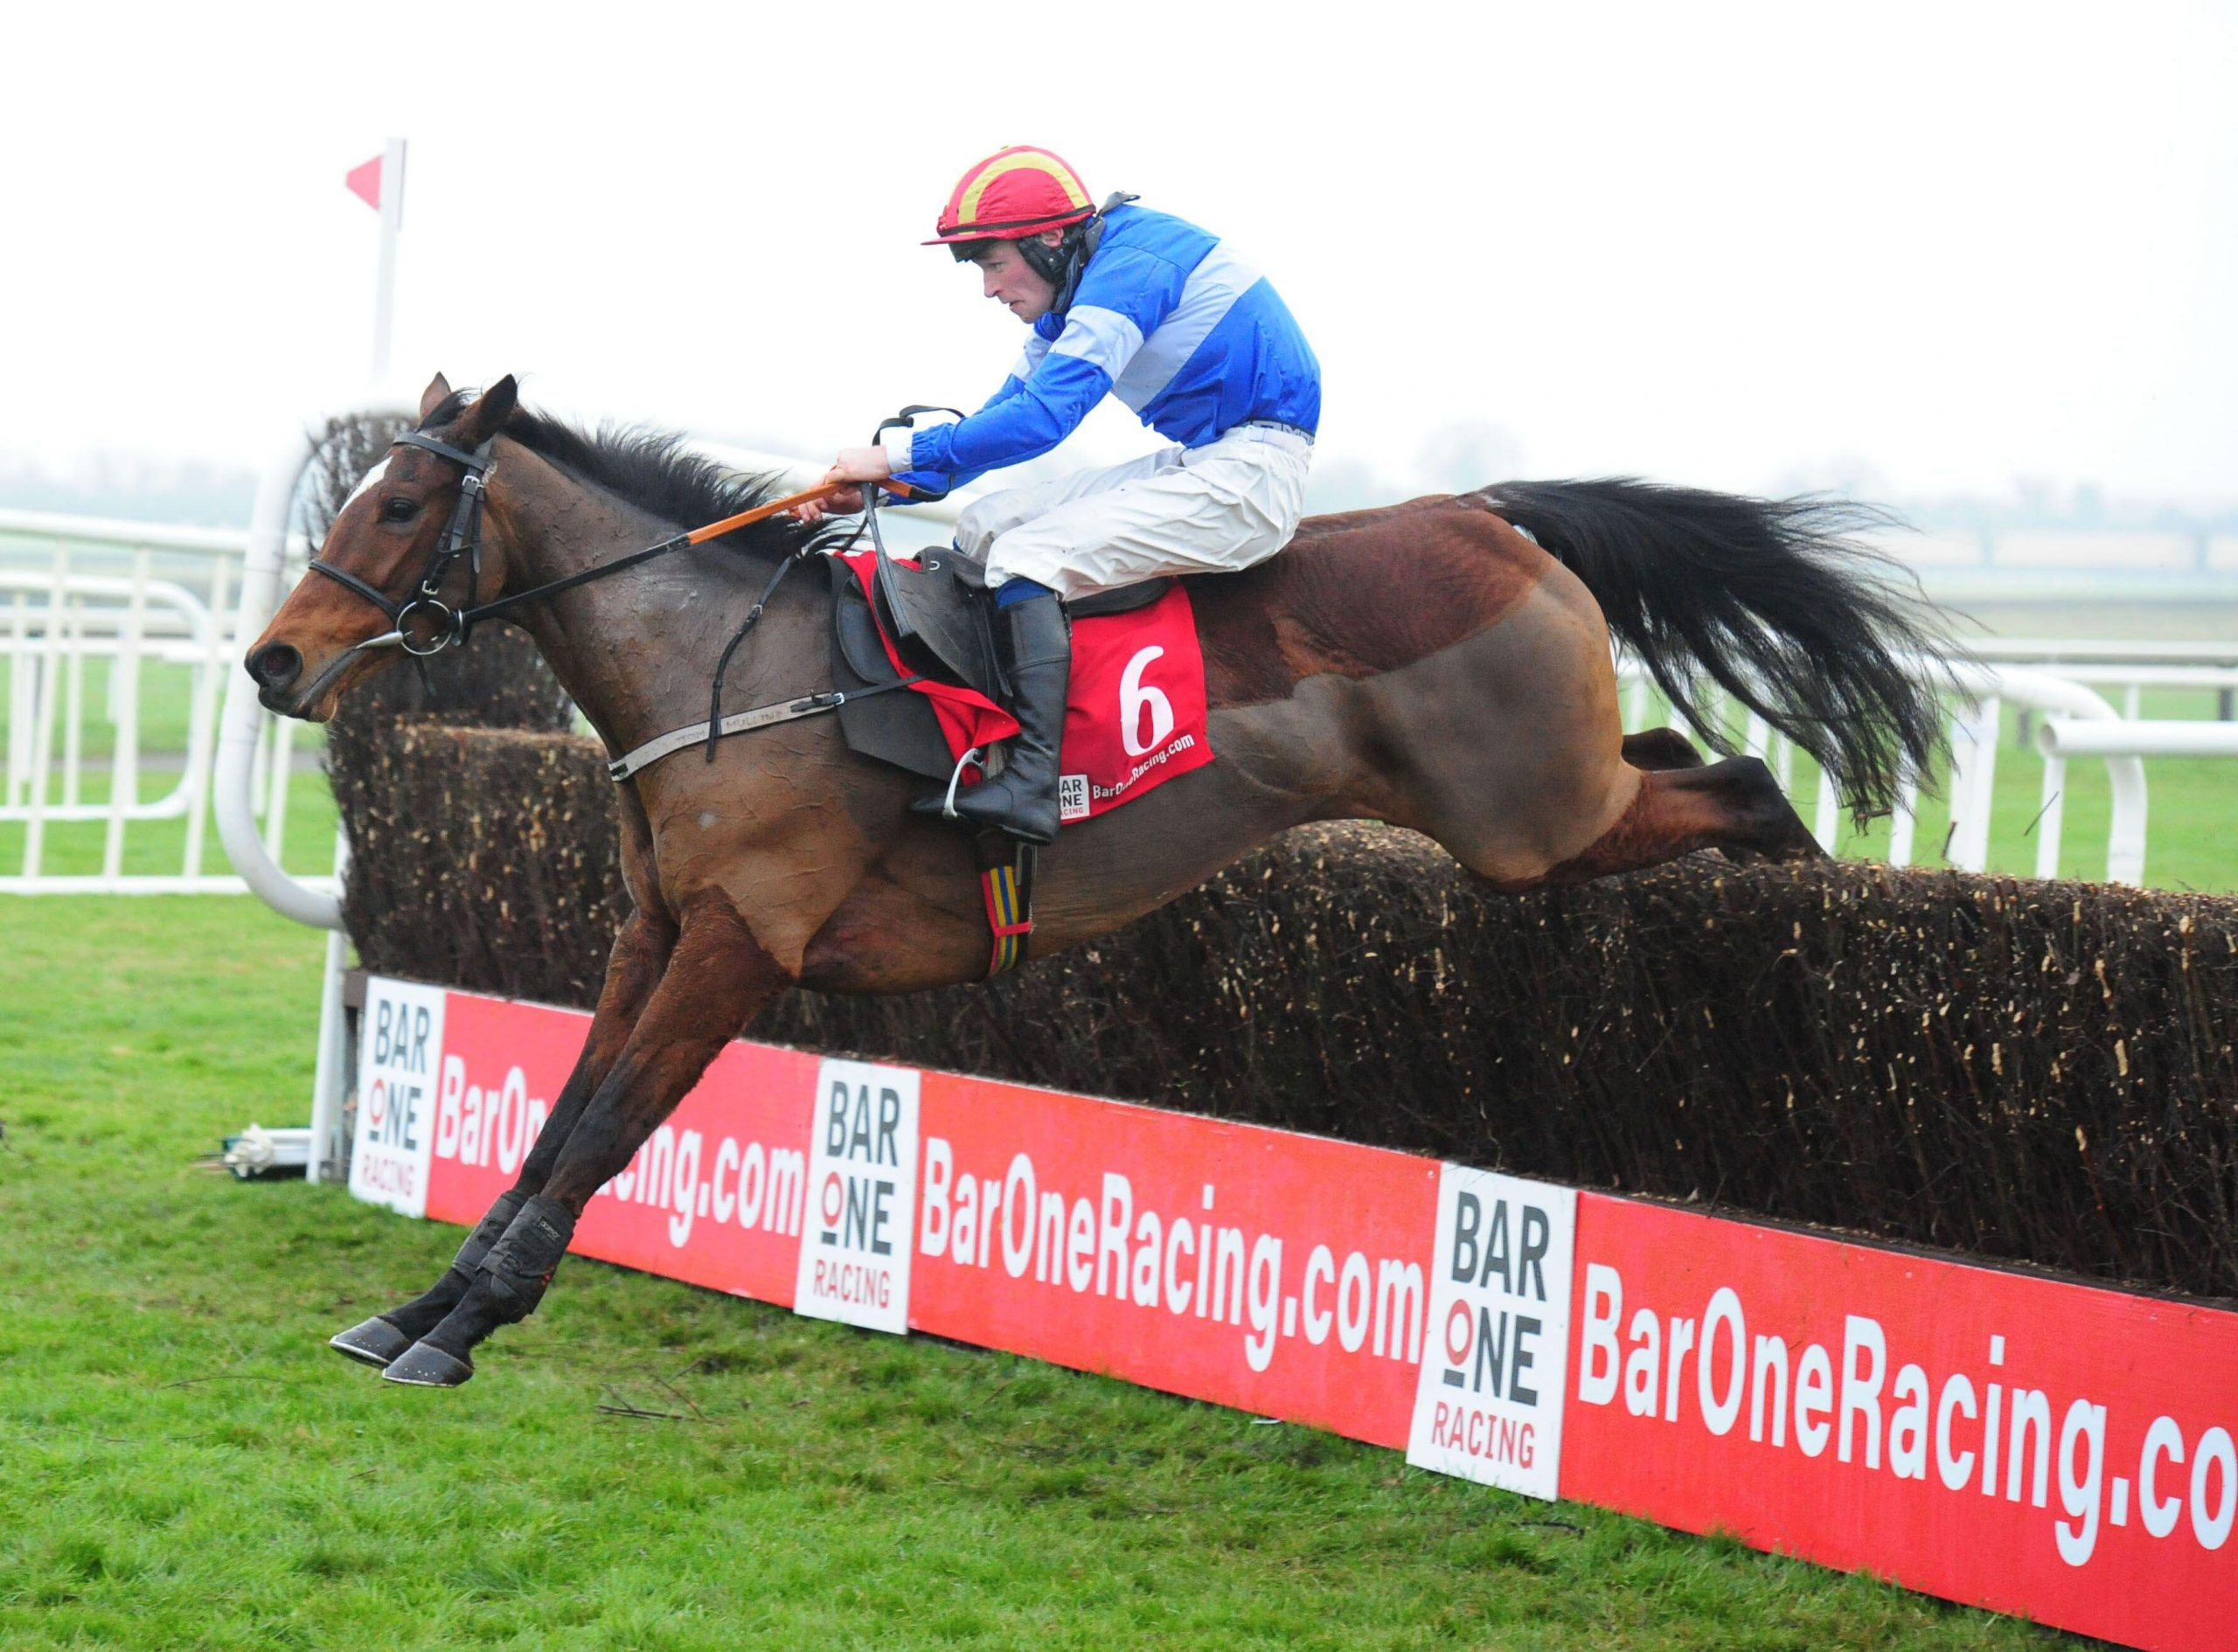 Court Maid ridden by David Mullins wins the BARONERACING.COM Porterstown Handicap Steeplechase at Fairyhouse Racecourse.